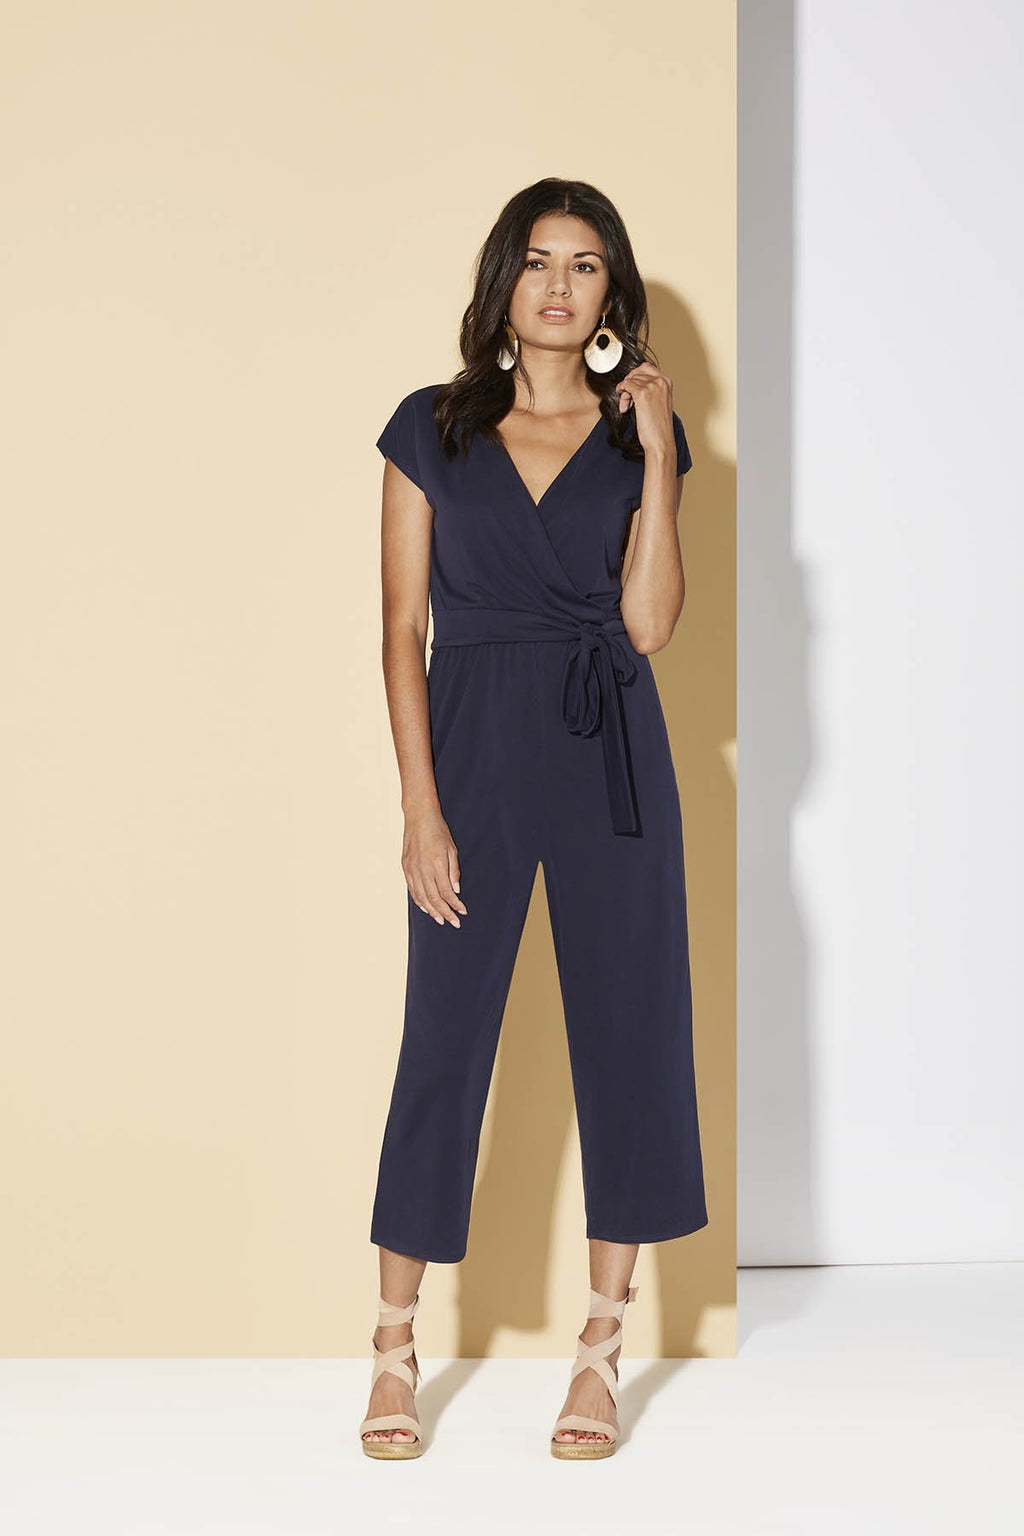 Modal Noir. Cherry Bobin's loved jumpsuit is back, just as comfortable and flattering as the old one, but now reversible! With a wrap side and a round neck side, it can be as chic as it is casual. 65% modal, 35% polyester, wash with delicate cycle in cold water, air dry. Designed and Made in Quebec.